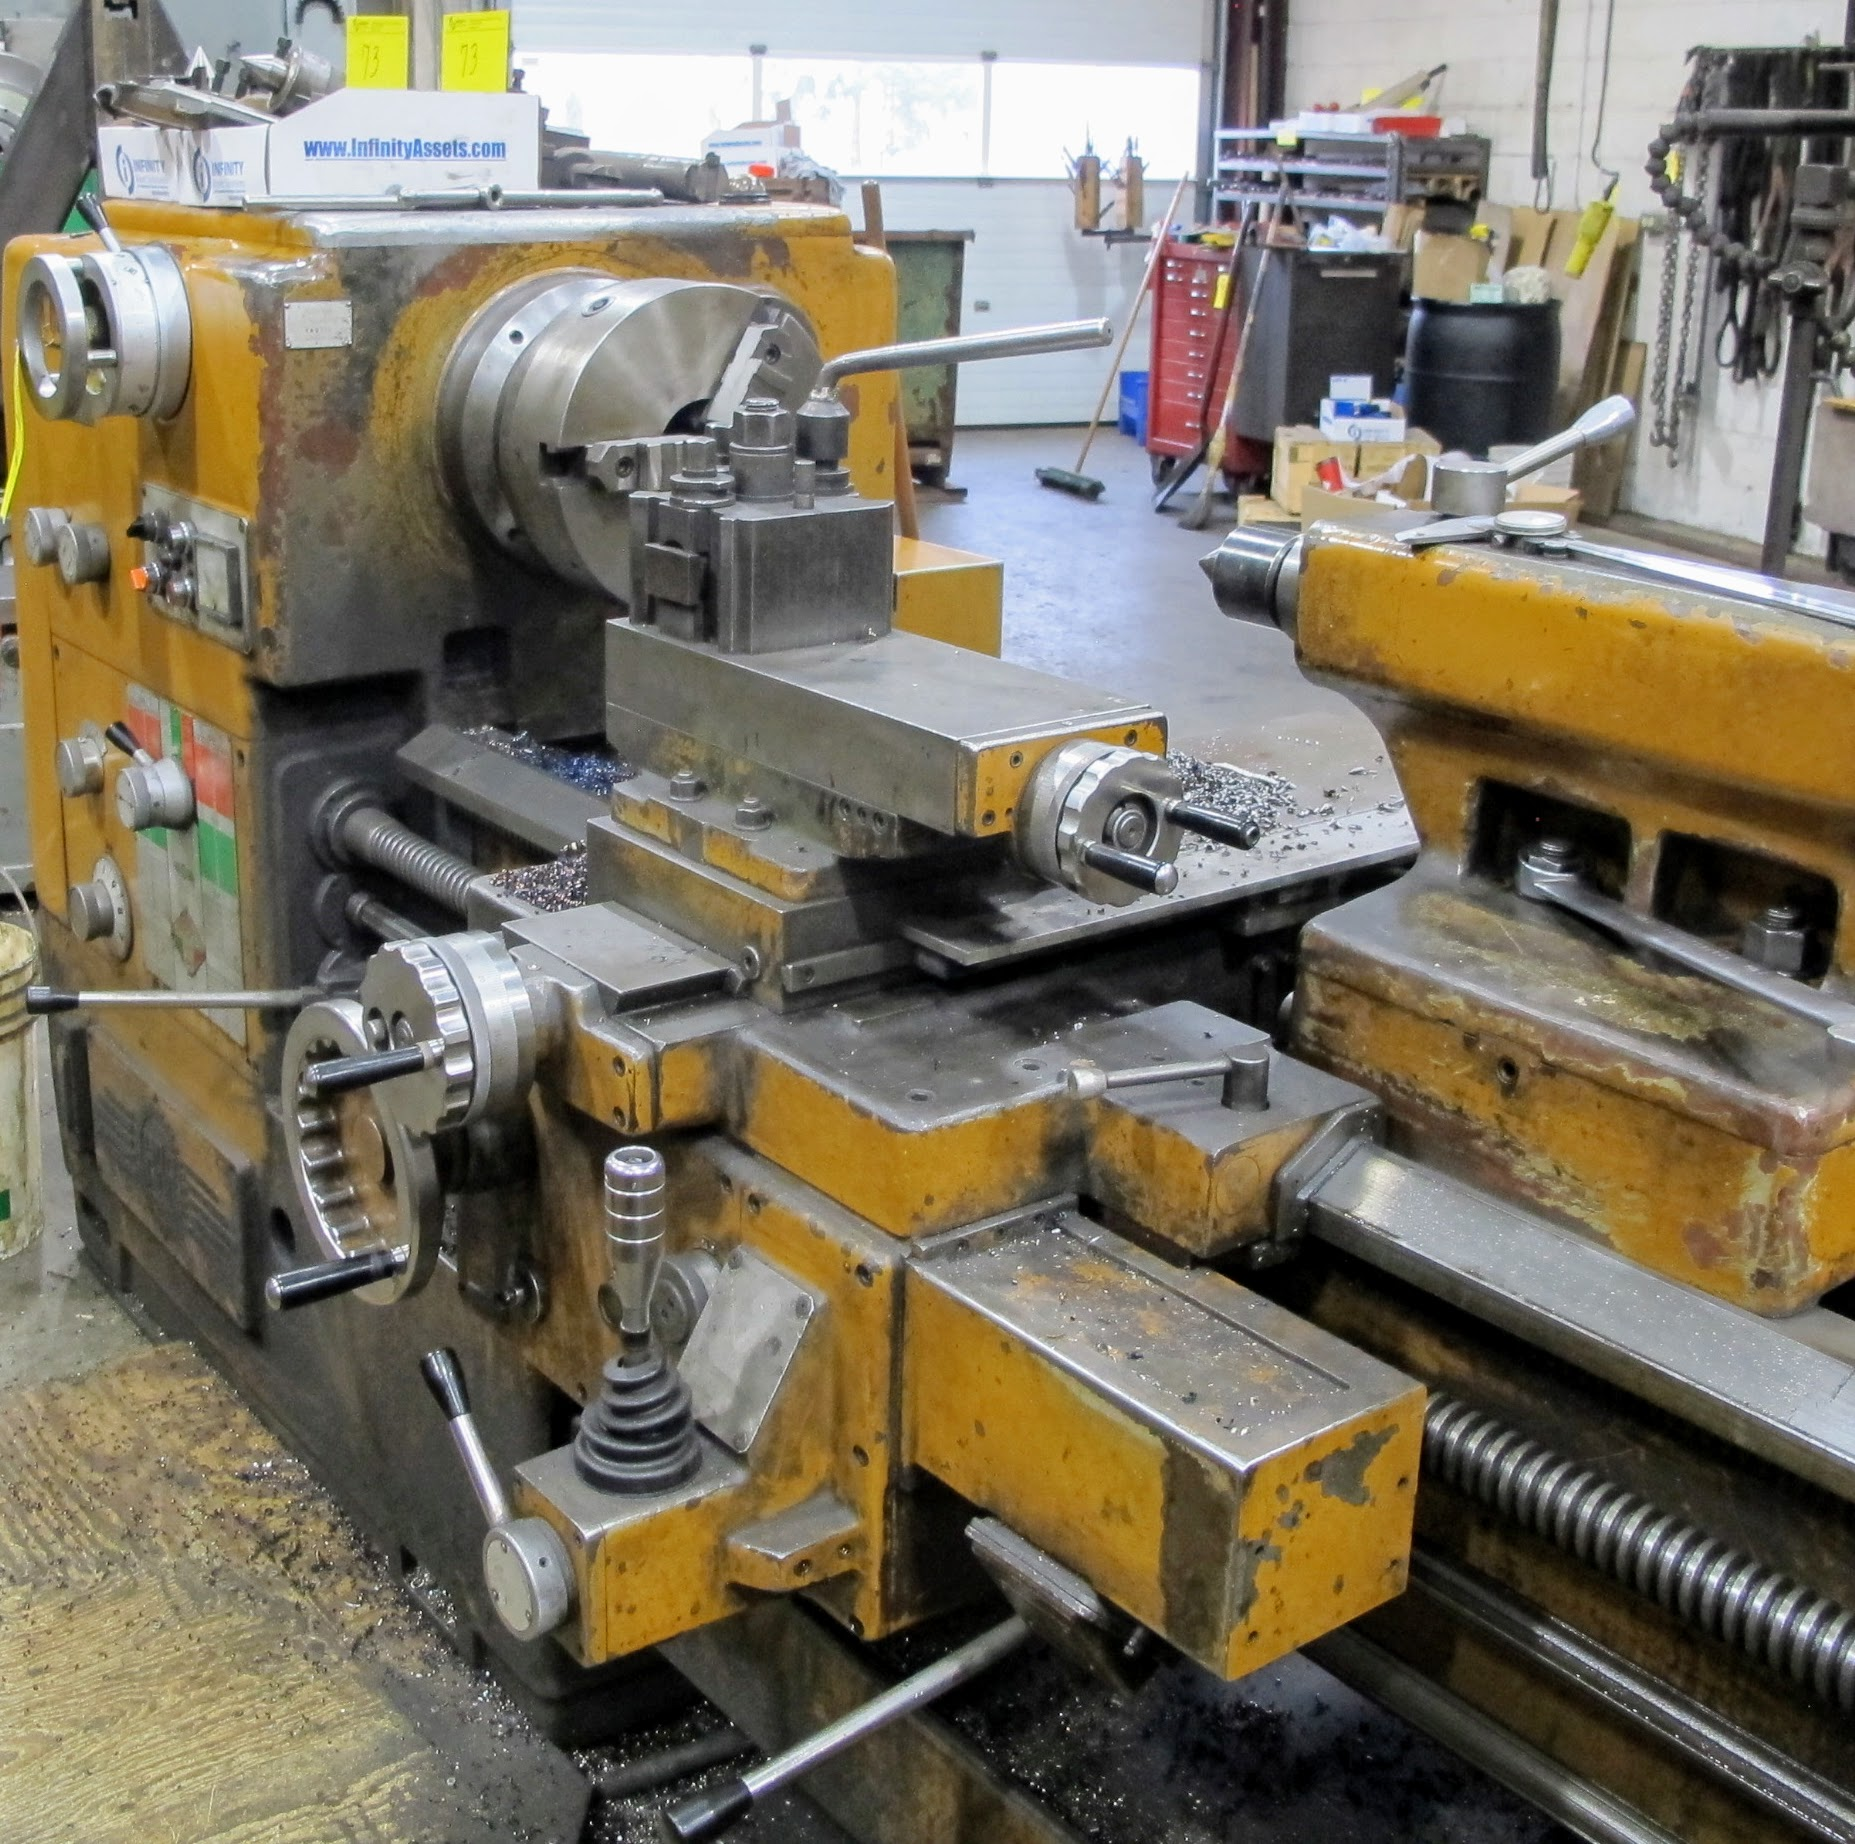 """PBR TM-30 LATHE, 2-AXIS DRO, 12"""" 3-JAW CHUCK, 12' BED, 15 - 1,500 RPM, QUICK CHANGE TOOL HOLDER, - Image 5 of 6"""